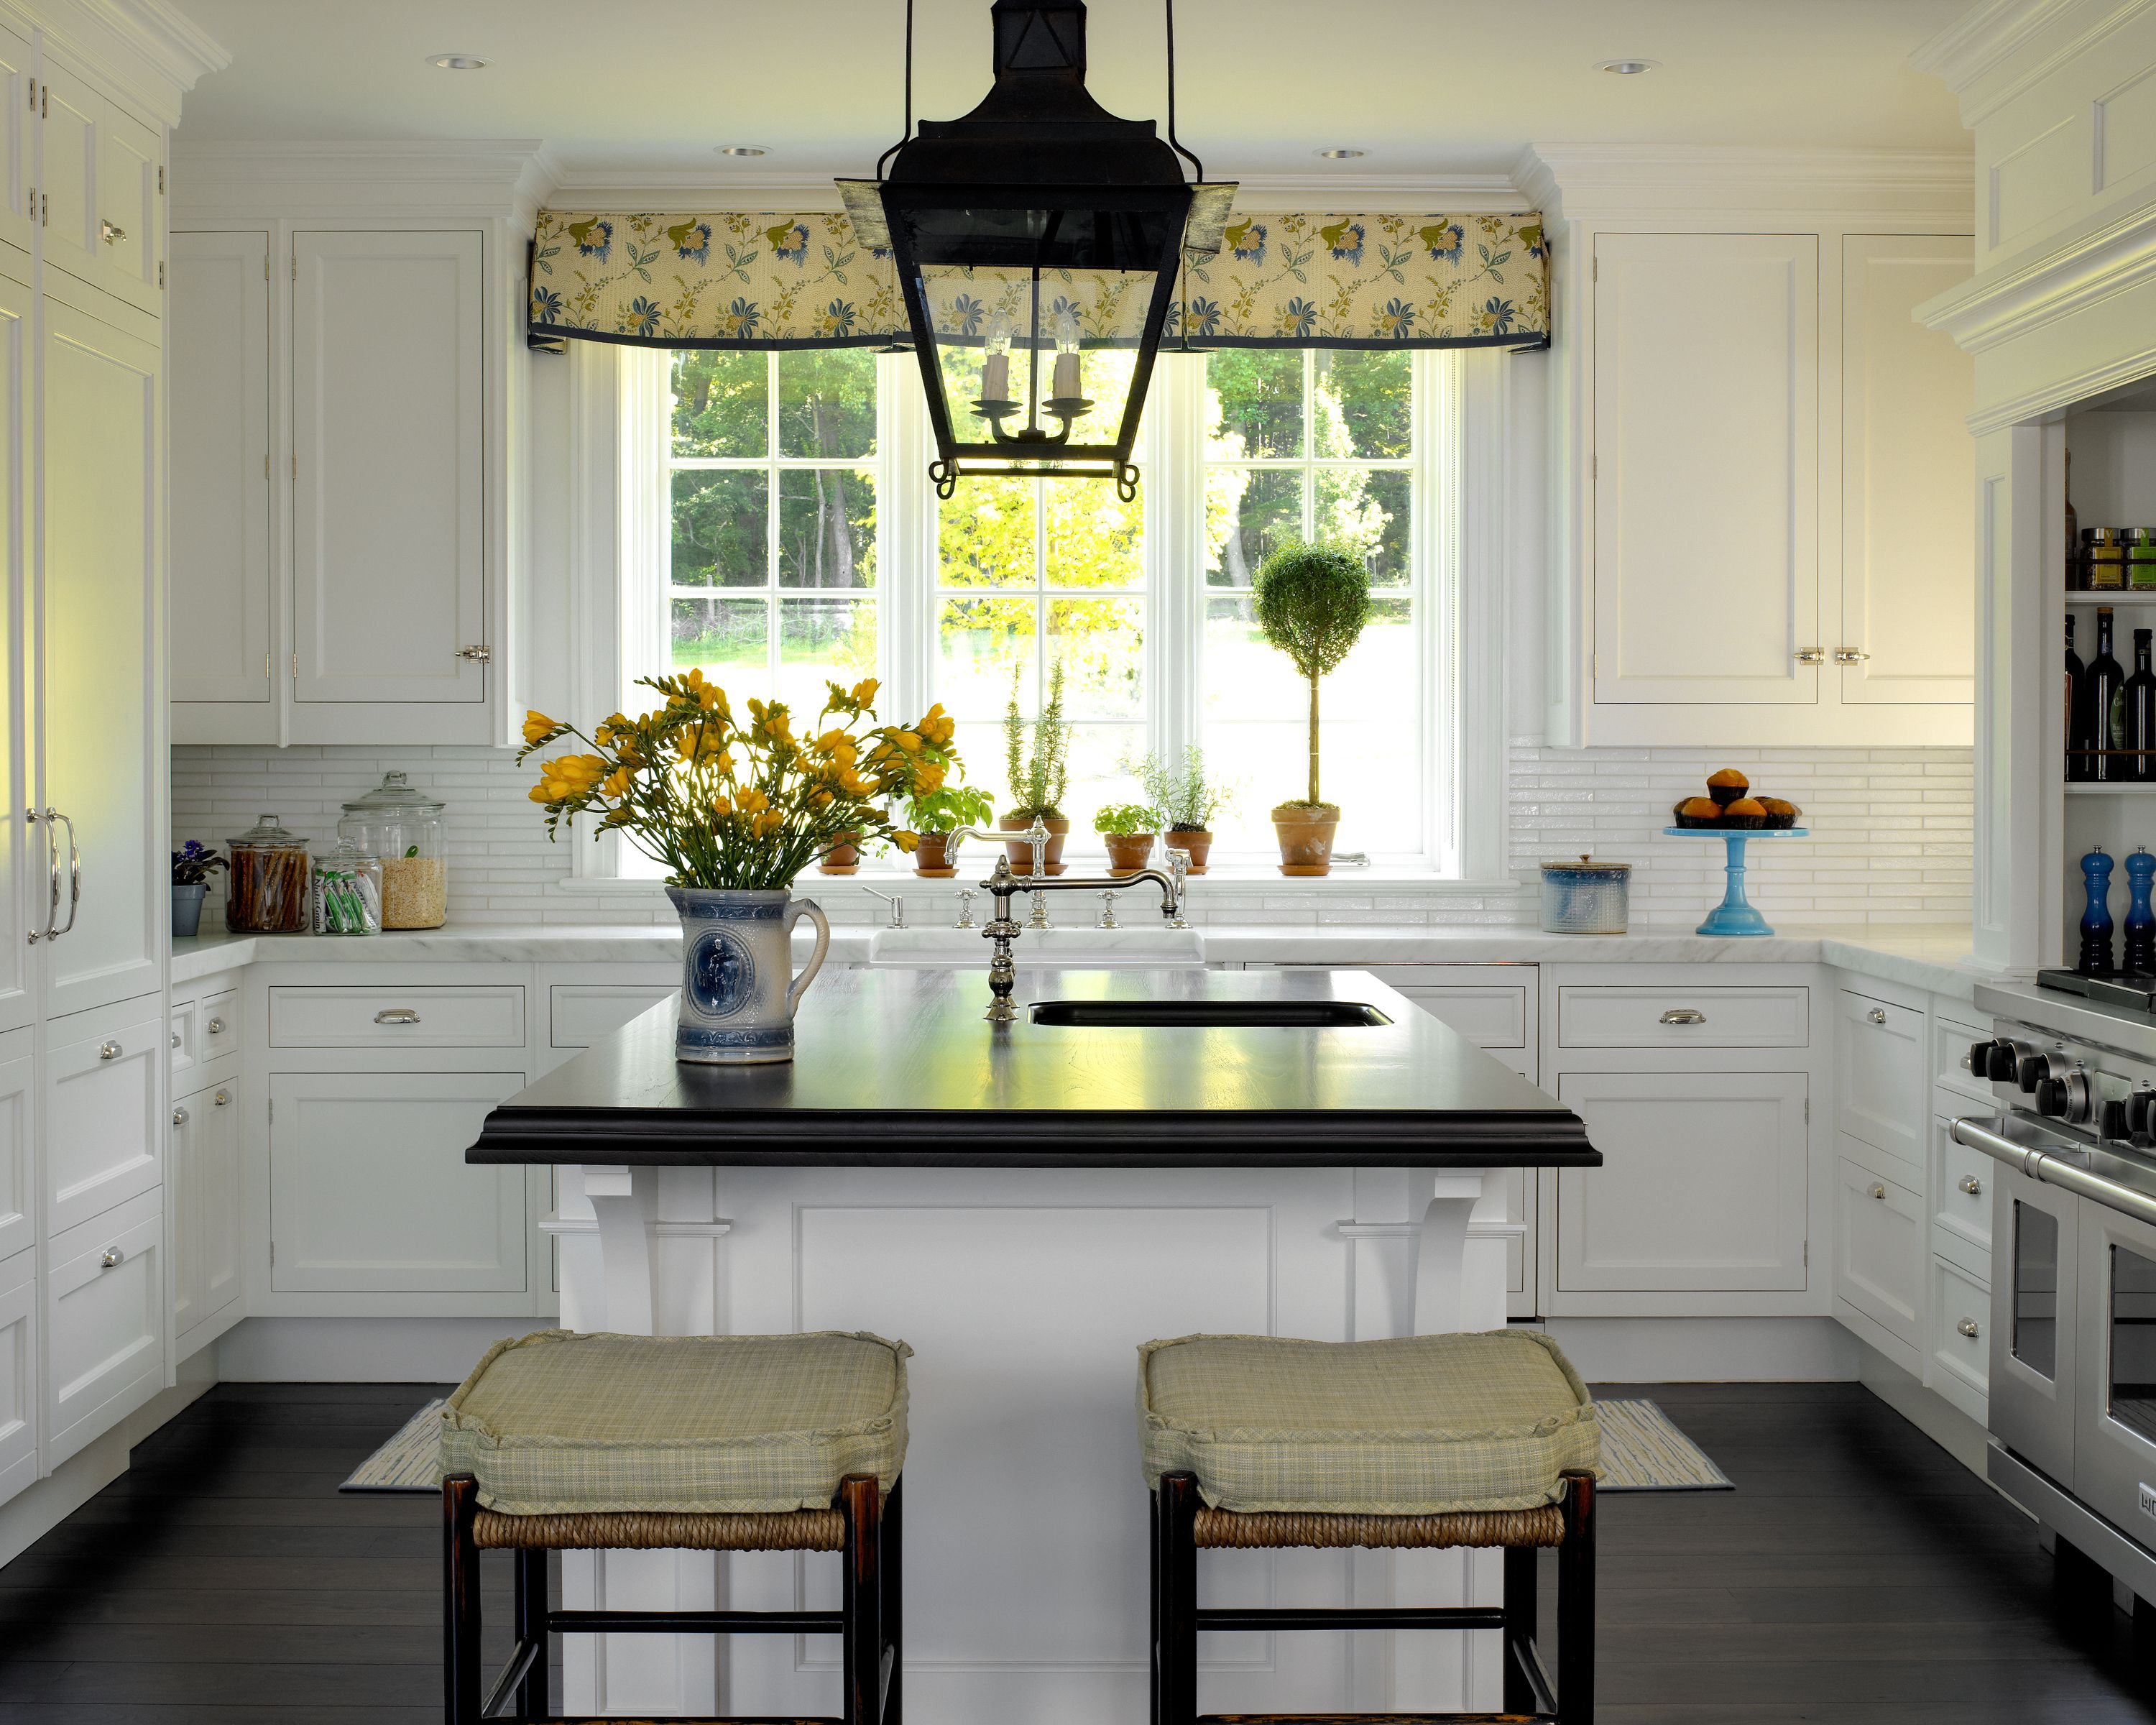 Colonial Style Kitchen With White Cabinetry Blue Yellow Accents Scott Sanders Kitchen Decor Colonial Home Decor New Kitchen